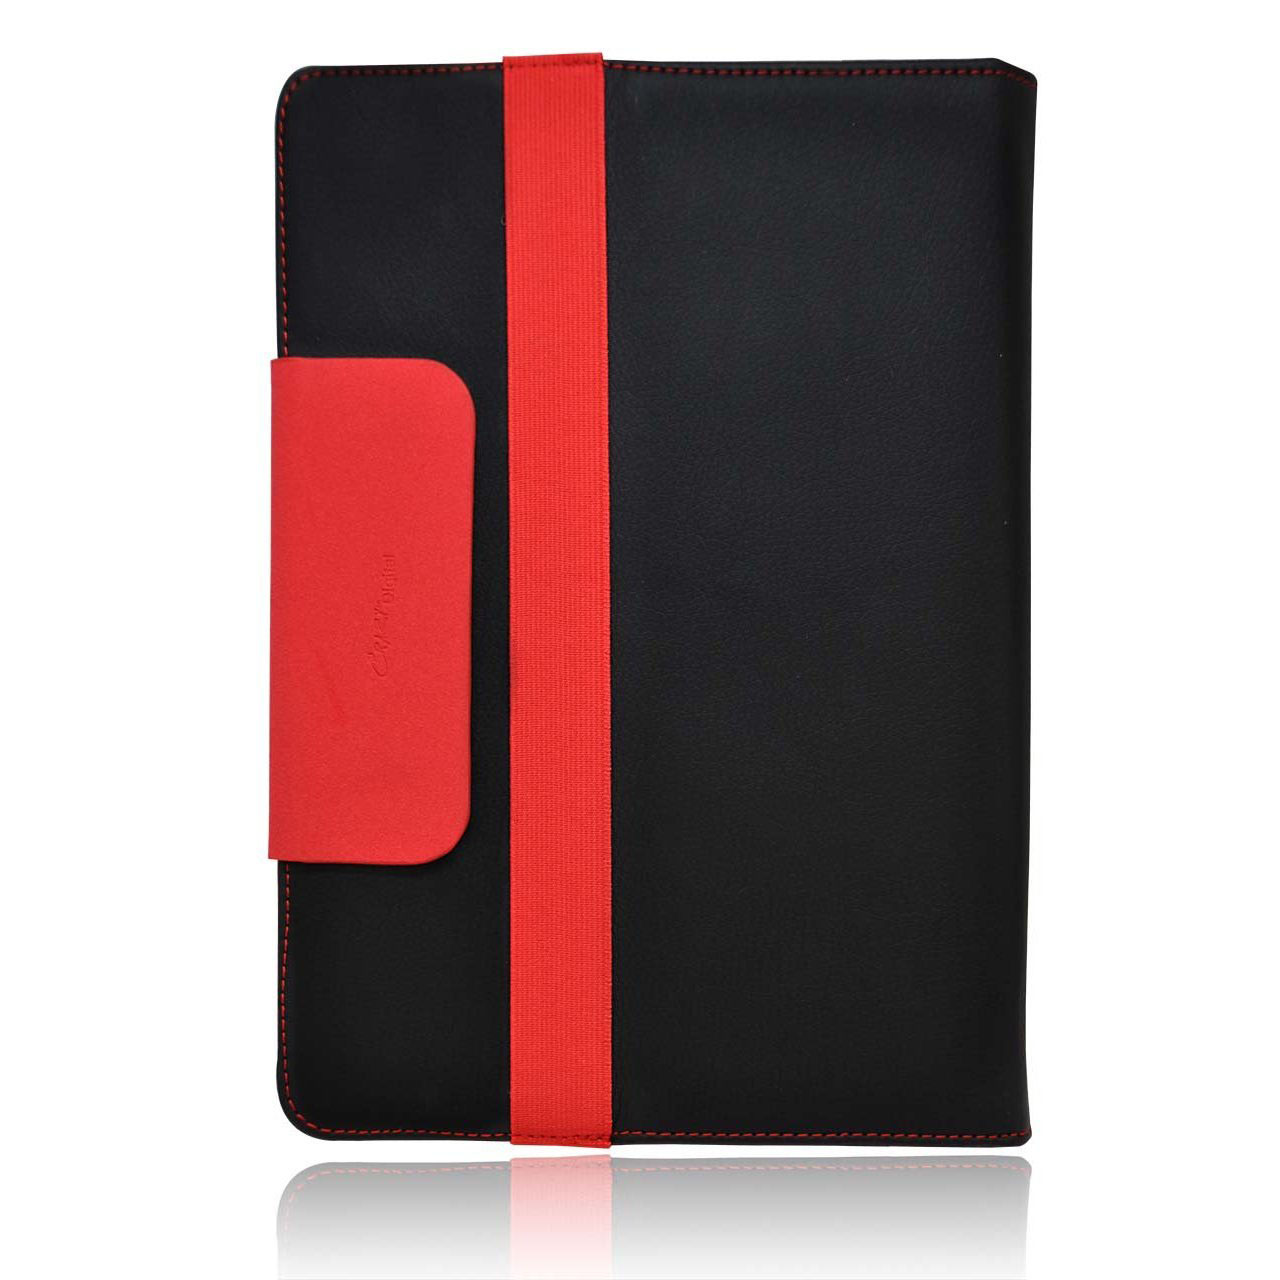 Ipad Mini Cases Dec 29 2012 21 56 03 Picture Gallery